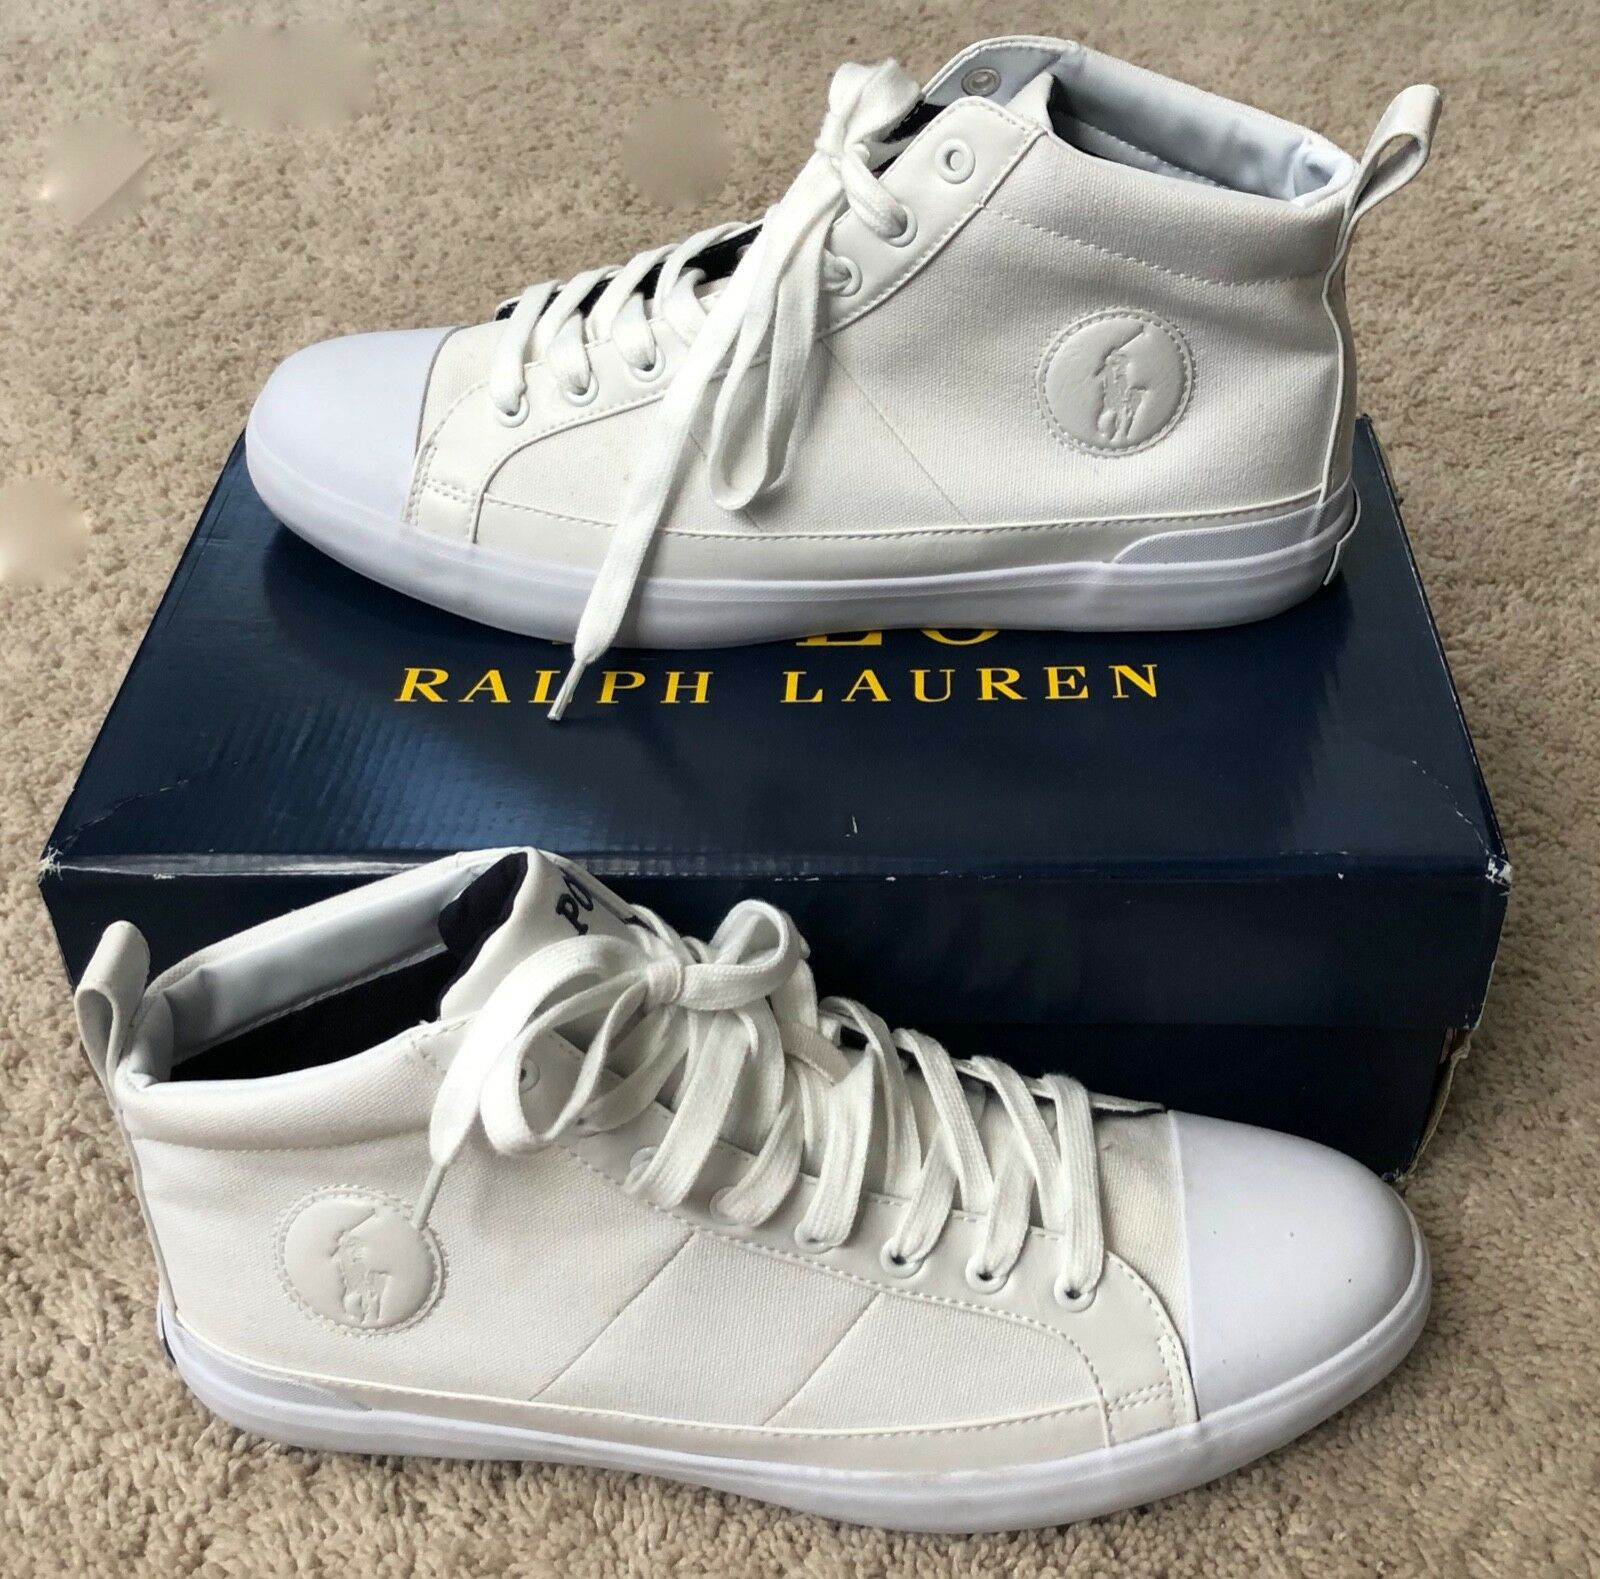 NEW IN BOX Polo Ralph Lauren Men's White Clarke High Top Canvas Sneakers 11.5